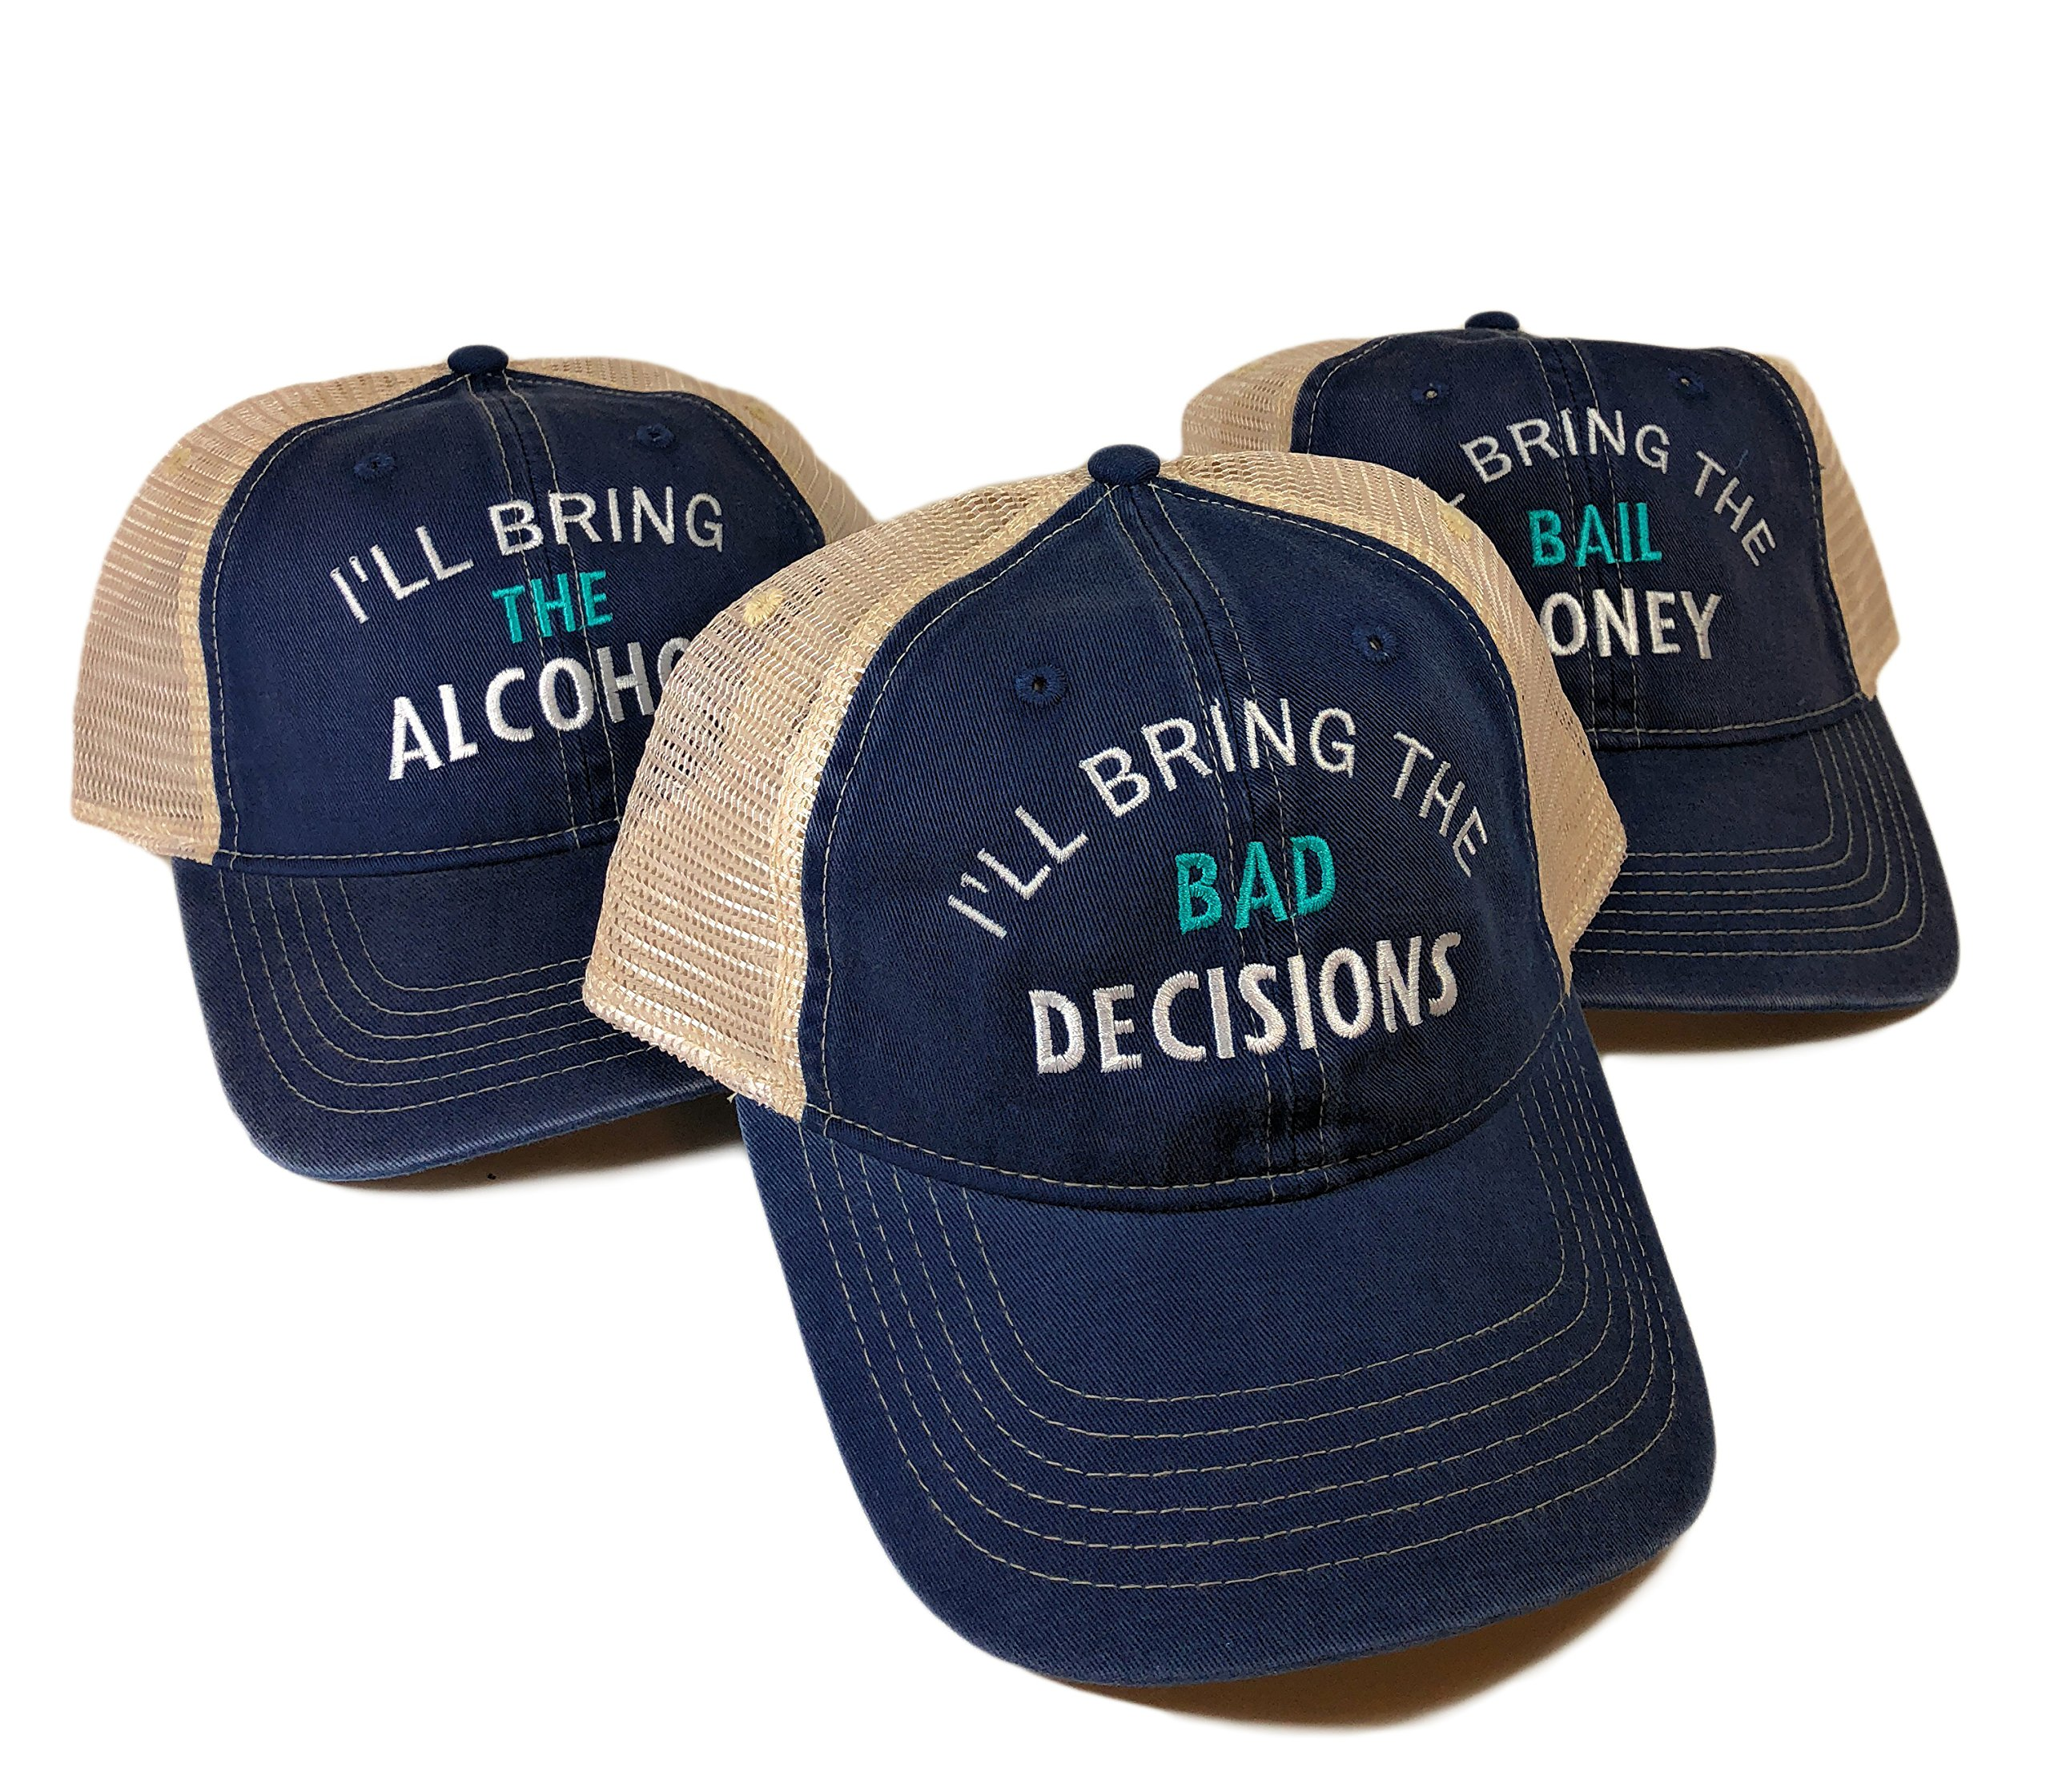 I'll Bring The Alcohol/Bad Decision/Bail Money Baseball Hats Set of 3 Blue Comfort Color